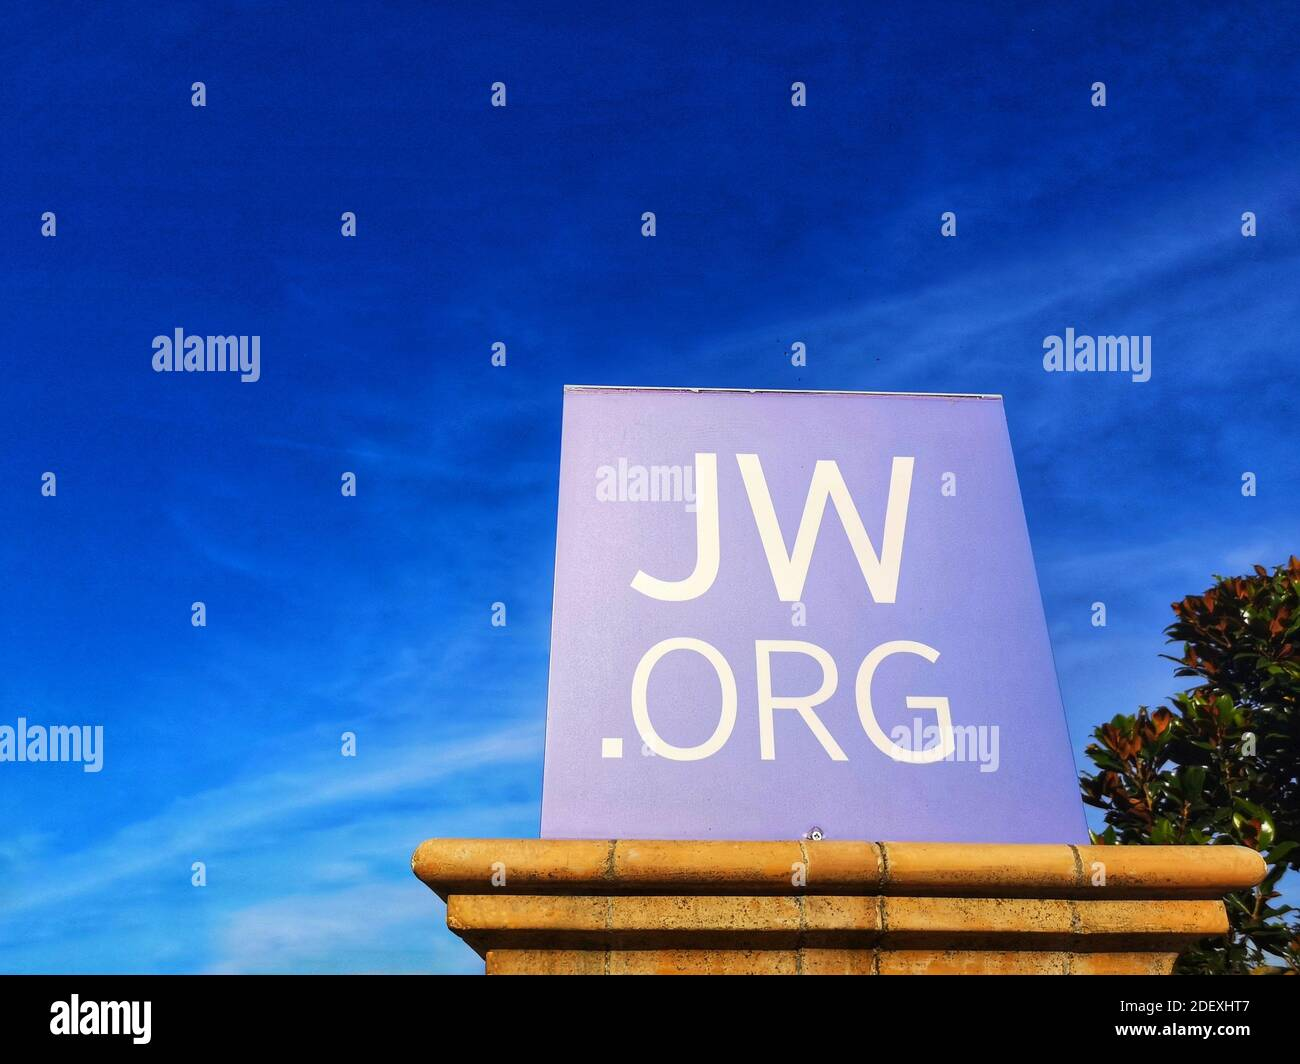 Jw Logo High Resolution Stock Photography And Images Alamy Download the vector logo of the jw.org brand designed by jw.org in adobe® illustrator® format. https www alamy com loreto aprutin italy oct 21 2020 kingdom halls of jehovahs witnesses logo jworg image387818039 html